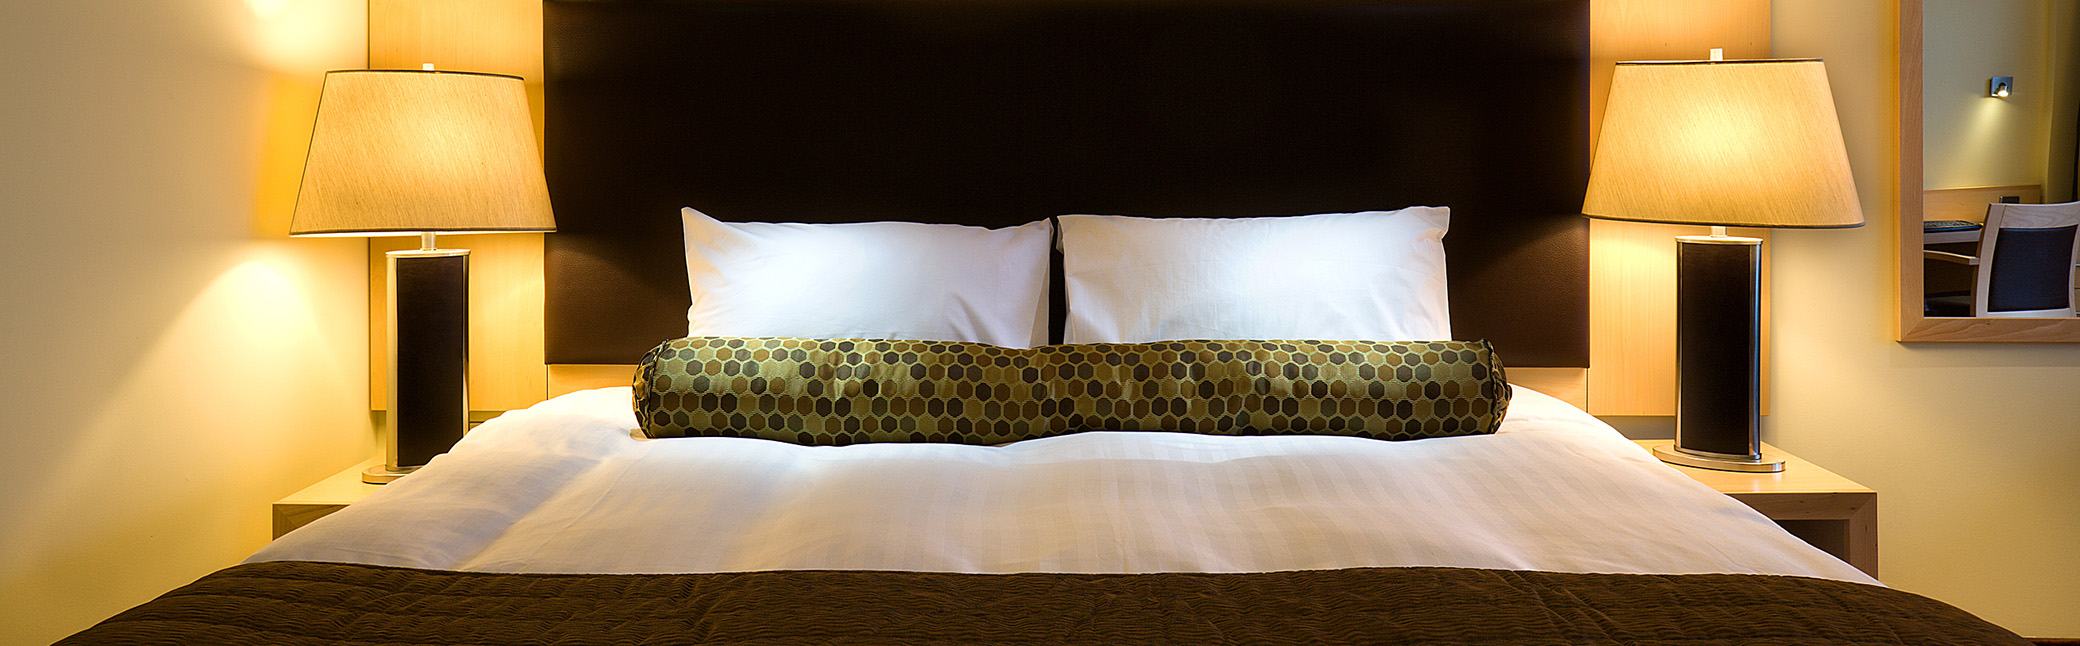 One of our luxury bedrooms.